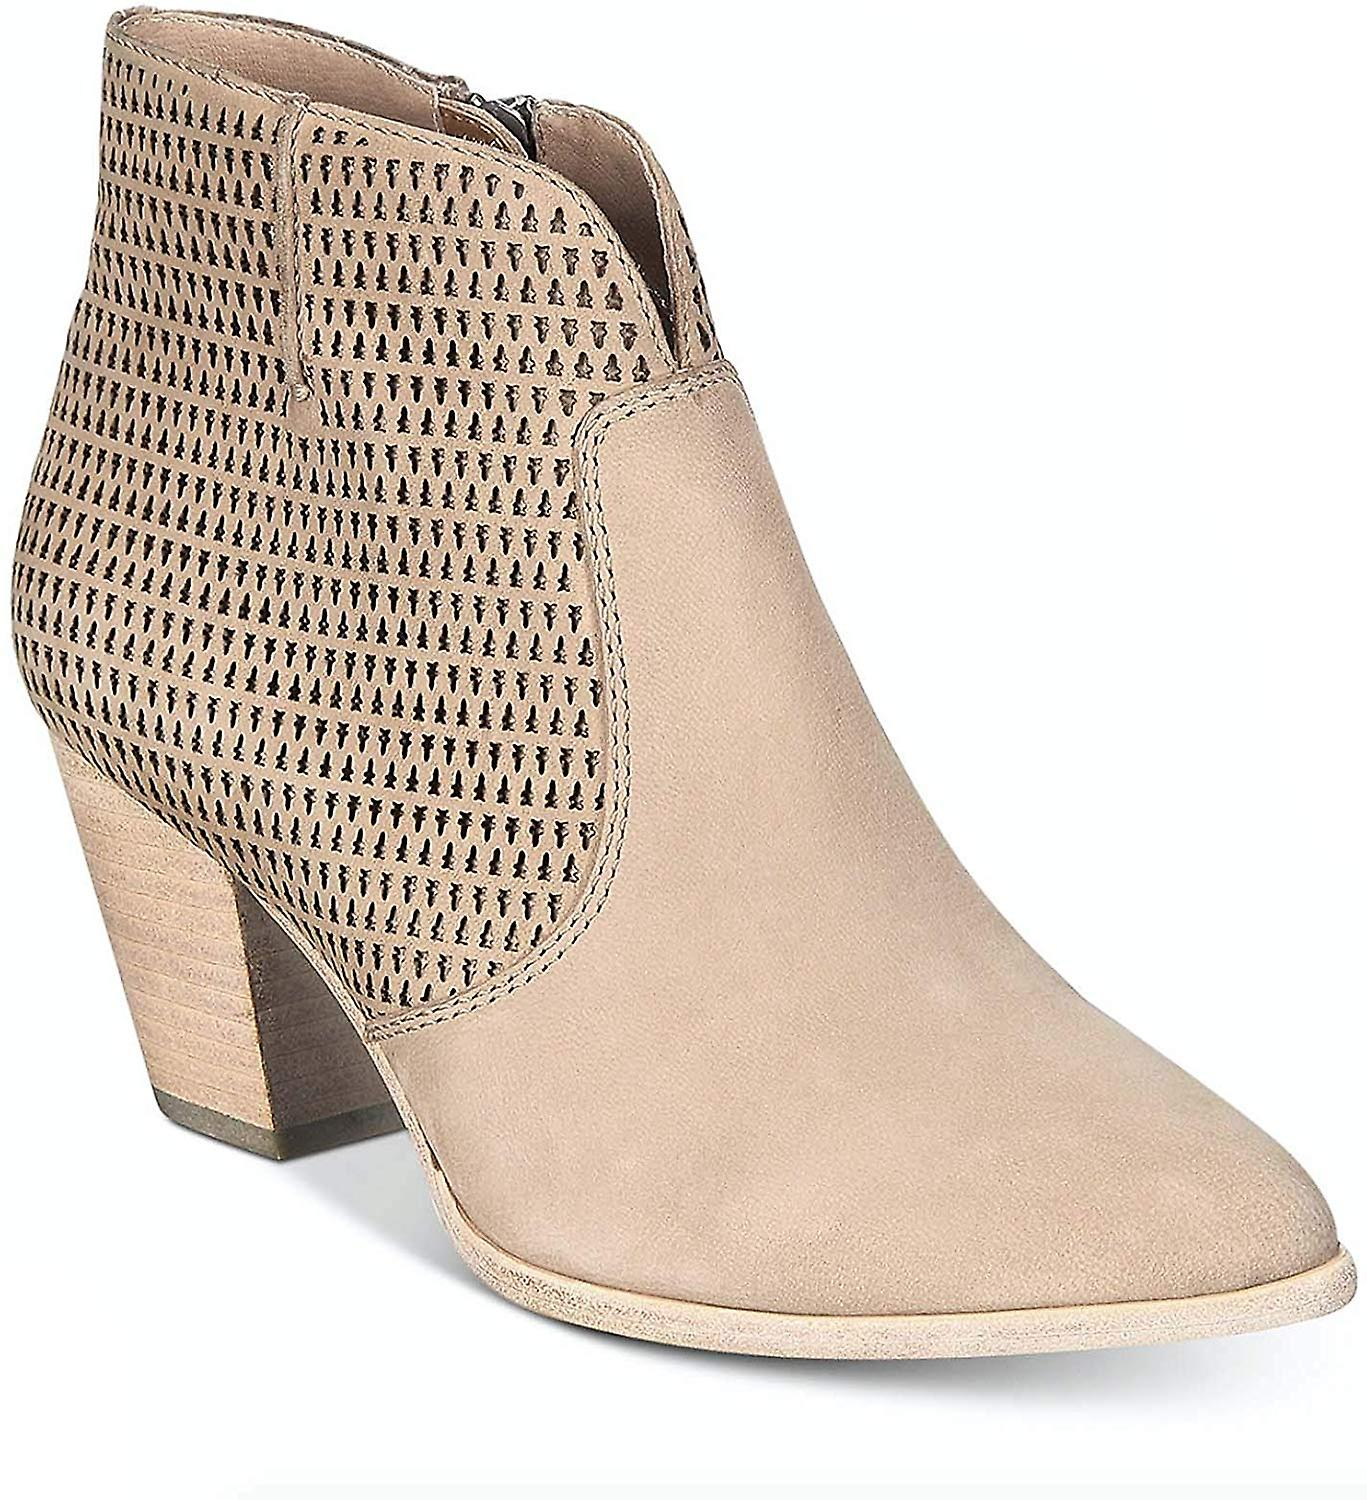 Frye Womens Jennifer Suede Ankle Booties Taupe 11 Medium (B,M)